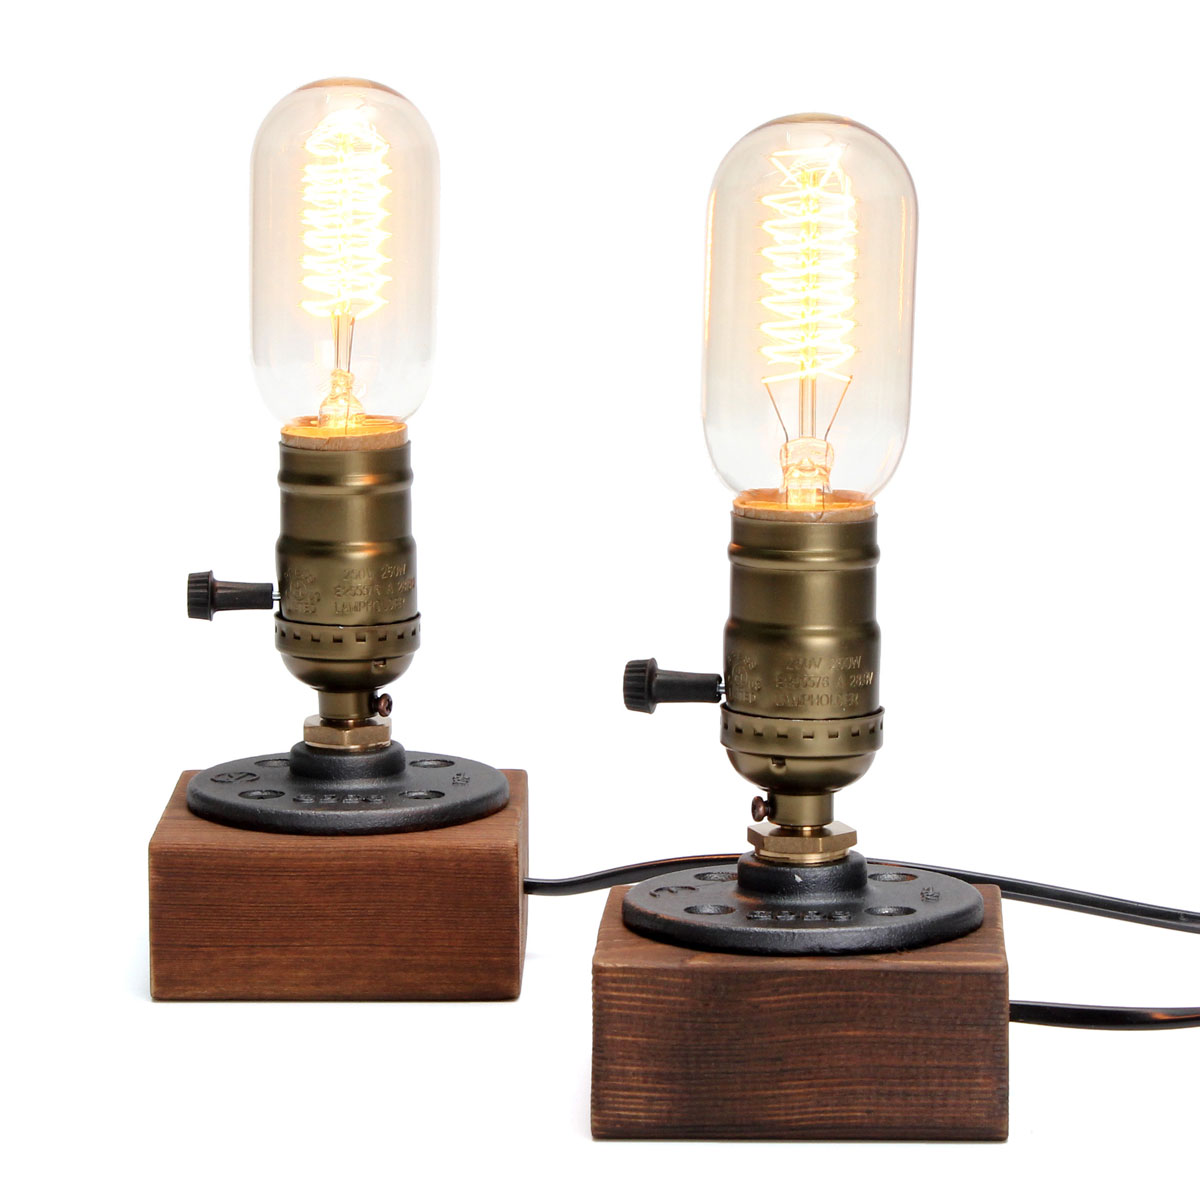 Vintage Desk Light Table Lamp Edison Bulb E27 40w Industrial Retro Wooden Socket Lighting